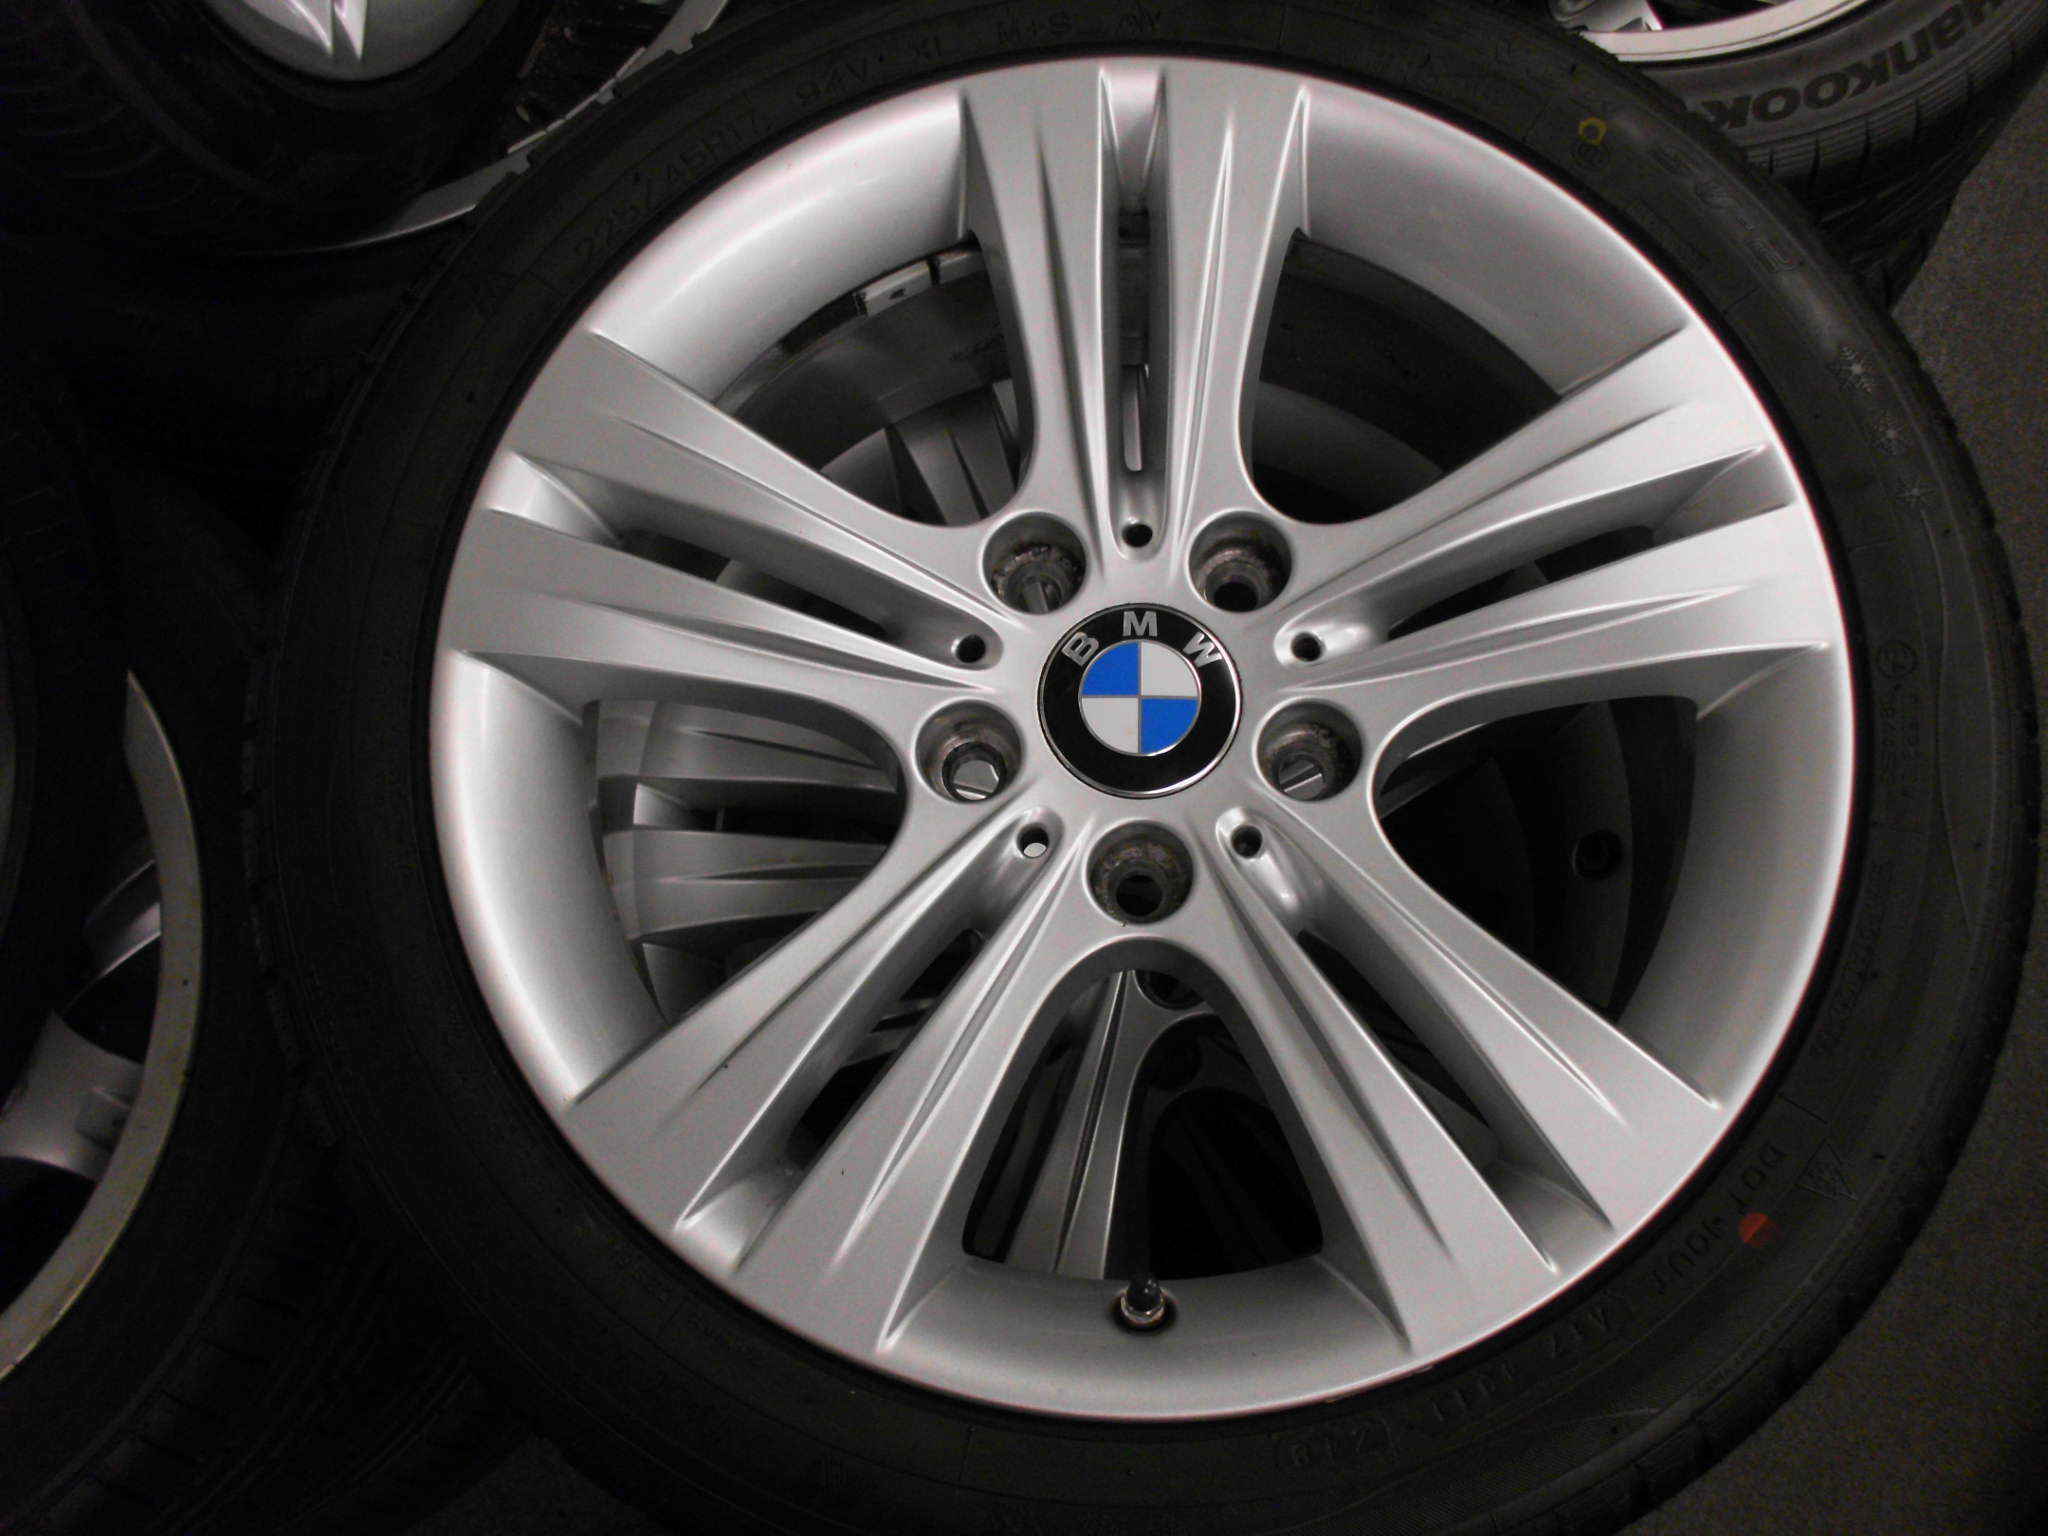 "USED 17"" GENUINE BMW STYLE 392 F30 5 SPOKE ALLOY WHEELS, NEAR UNMARKED INC NEW NANKANG SV2 WINTER TYRES INC TPMS"